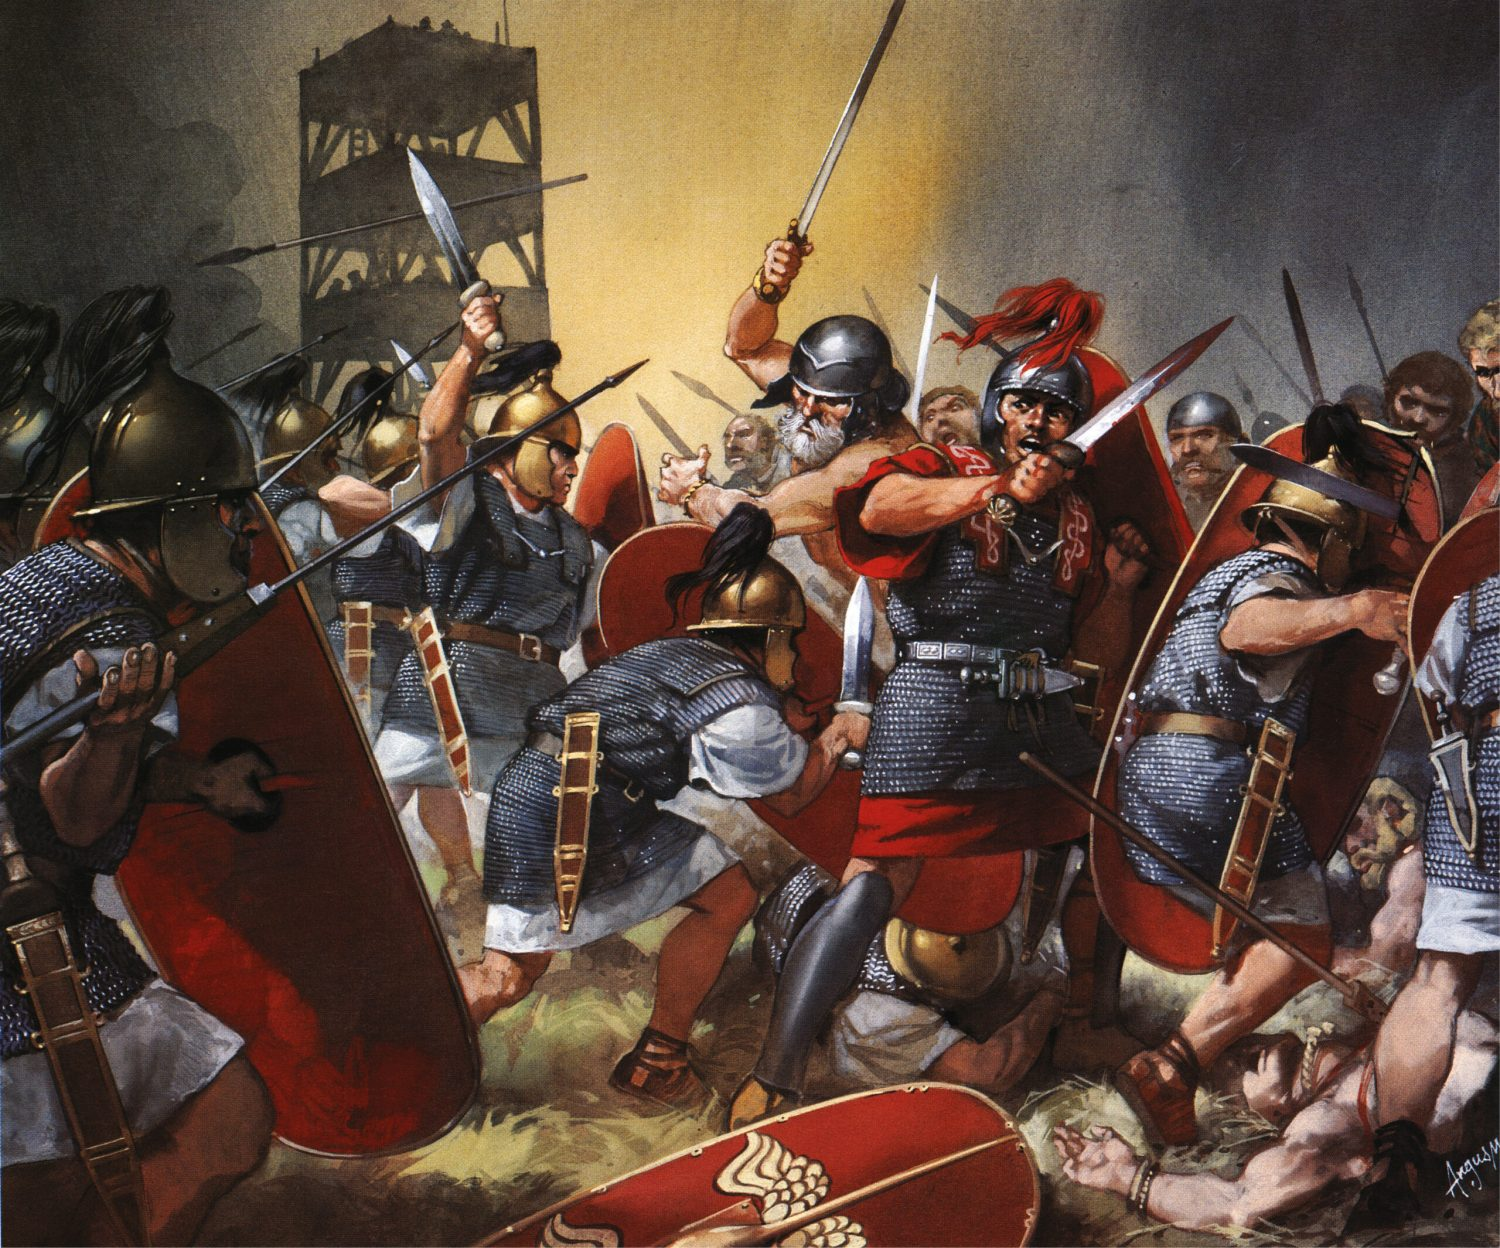 above Roman legionaries in action at the Siege of Alesia in 52 BC.